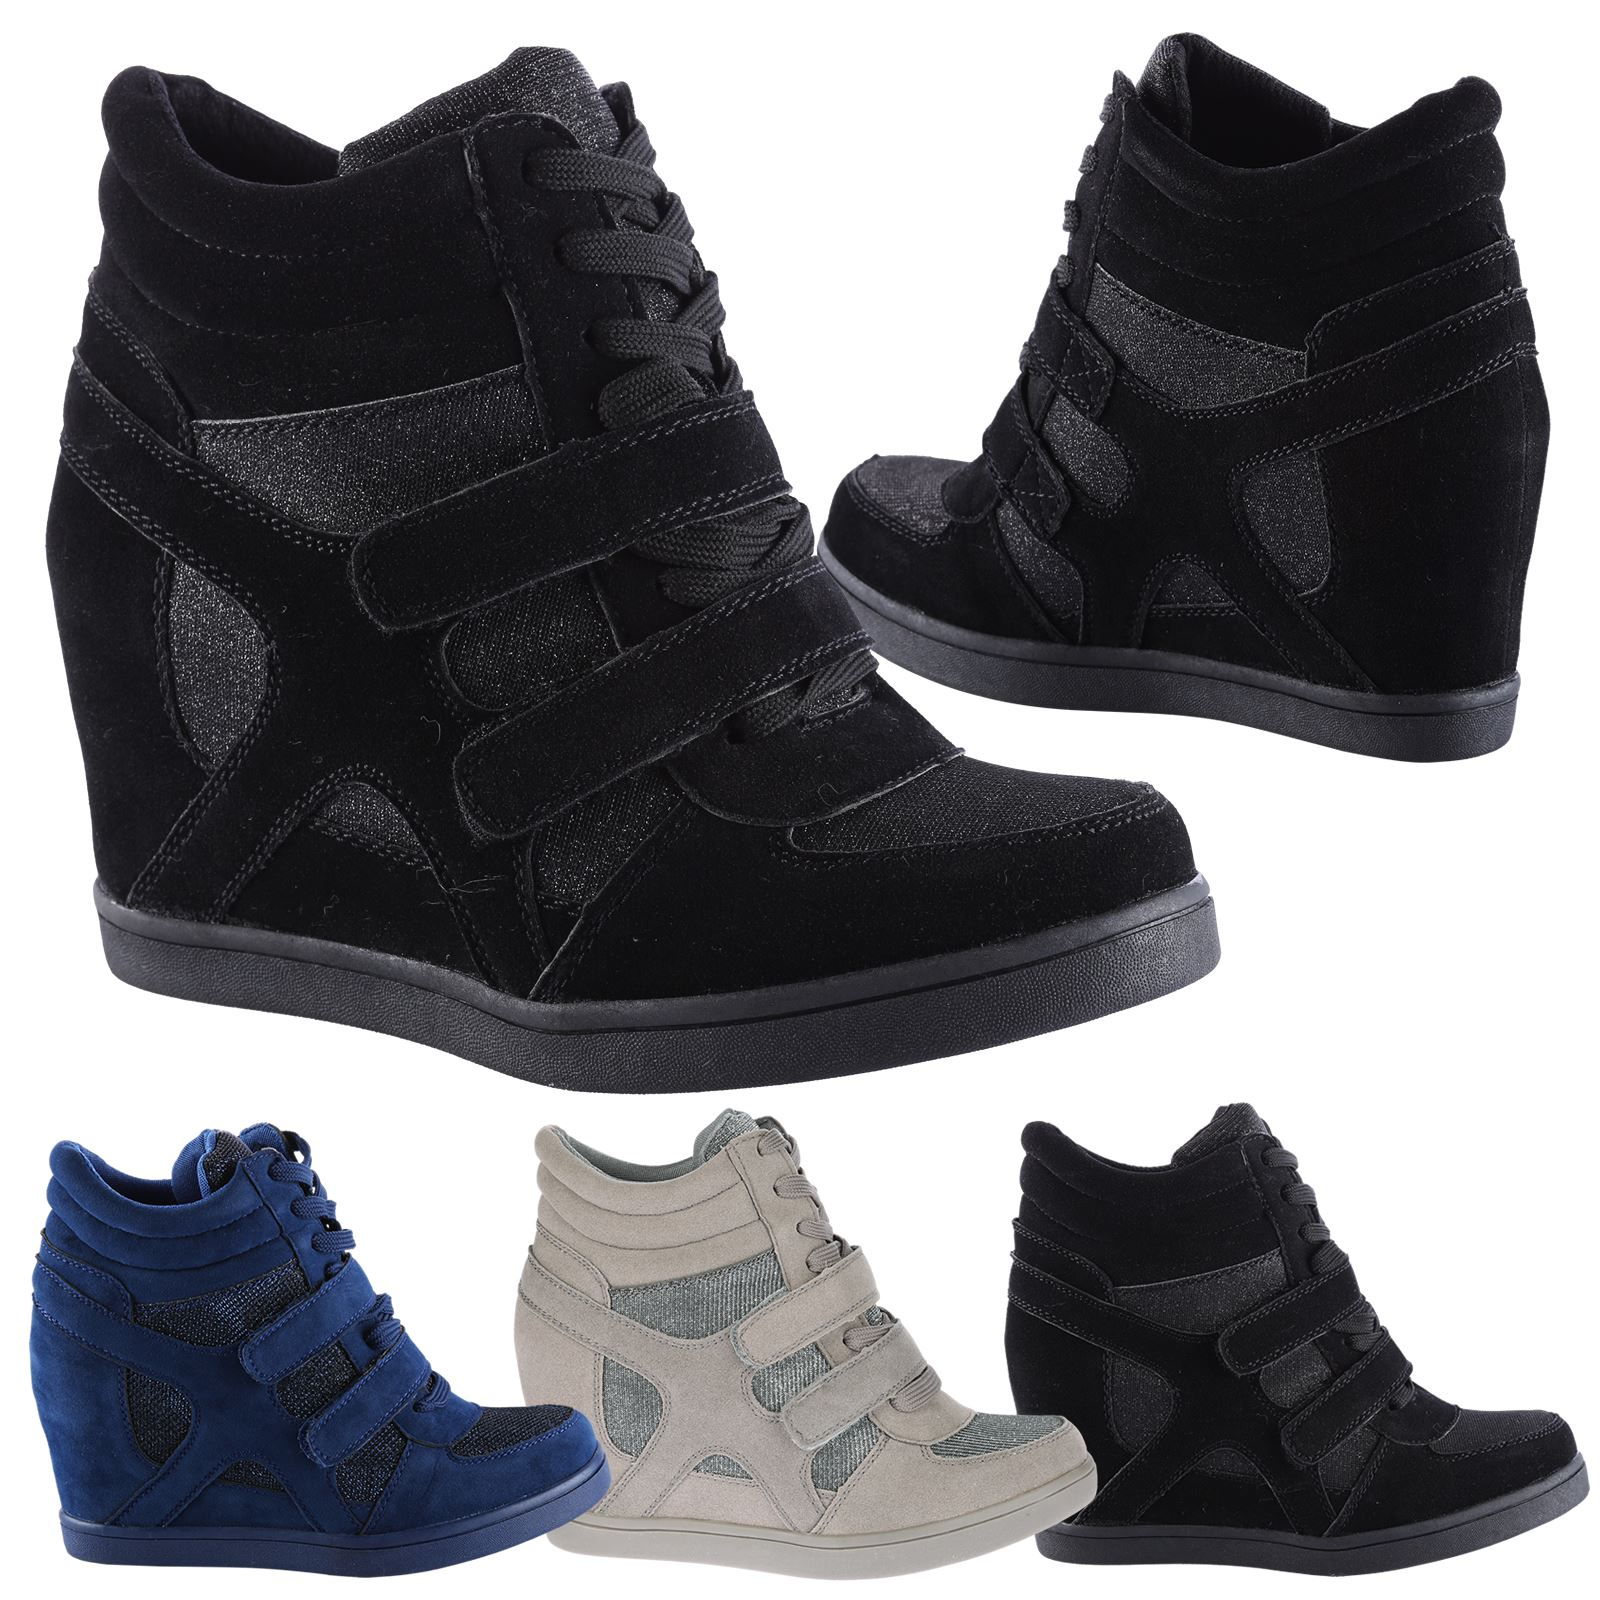 8f9064c5f4d Edie Womens Hidden Wedges Heels Ladies Glitter Shimmer Trainers Ankle Boots  Size